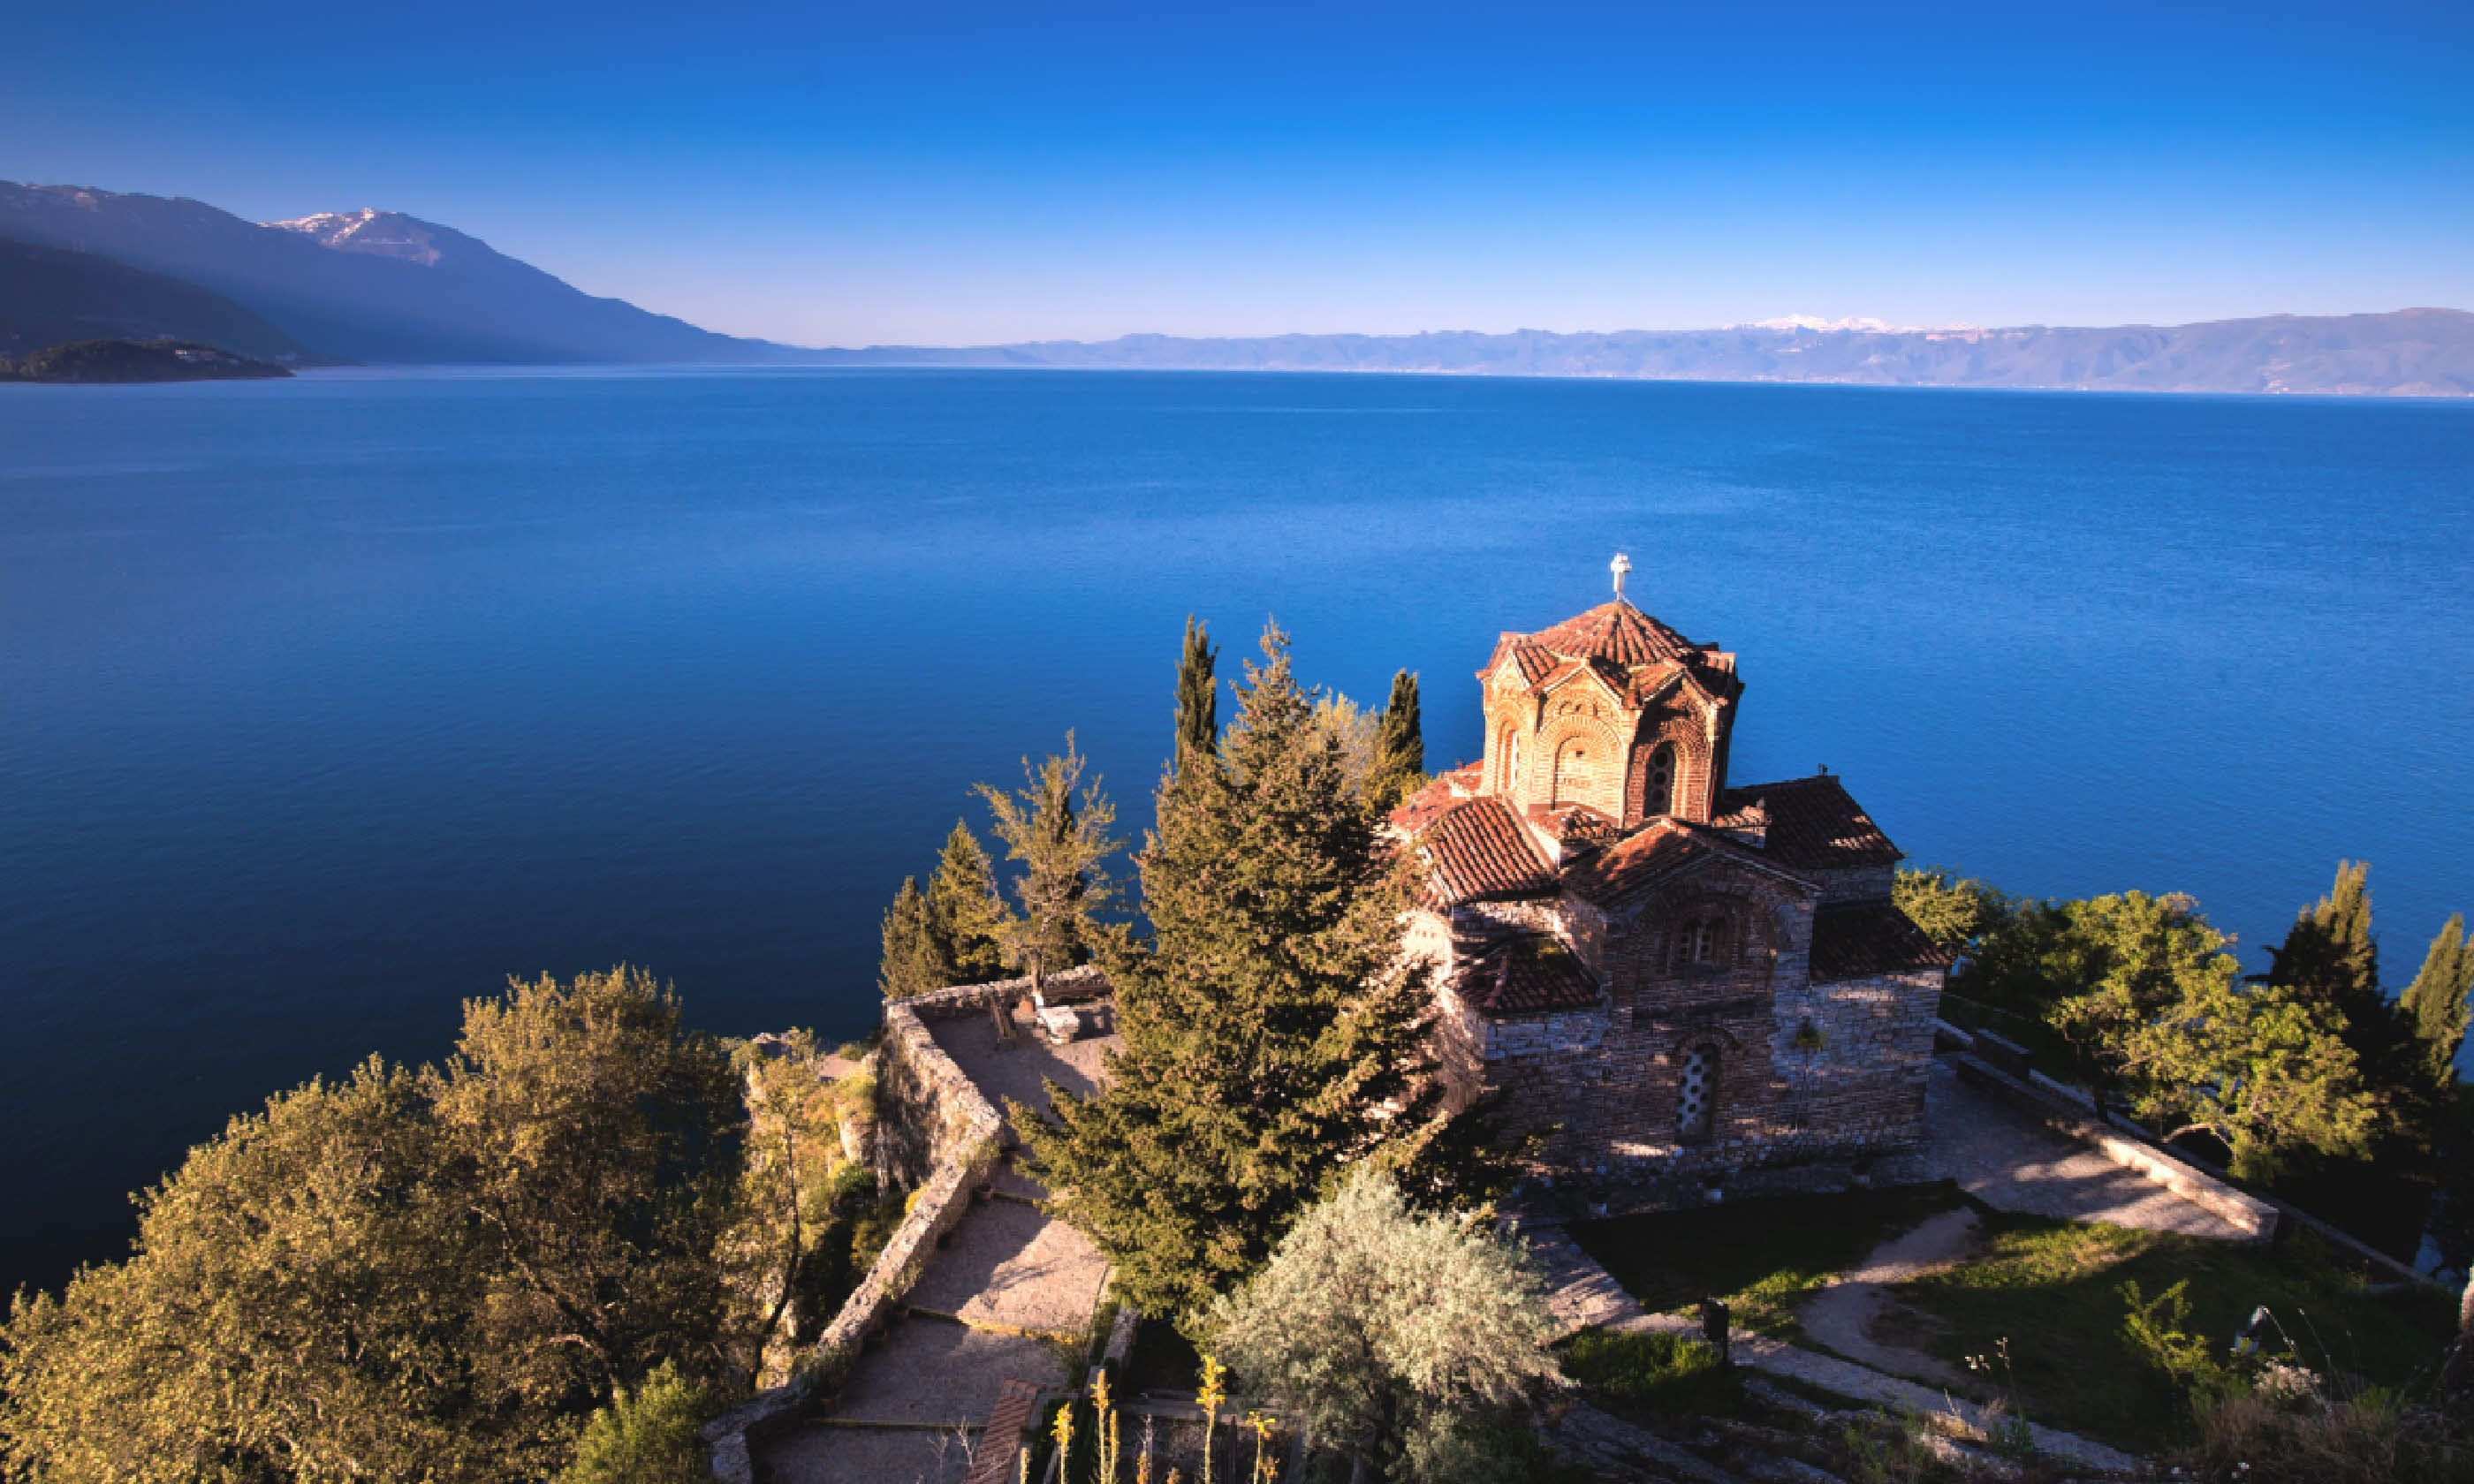 Lake Ohrid, Macedonia (Shutterstock)